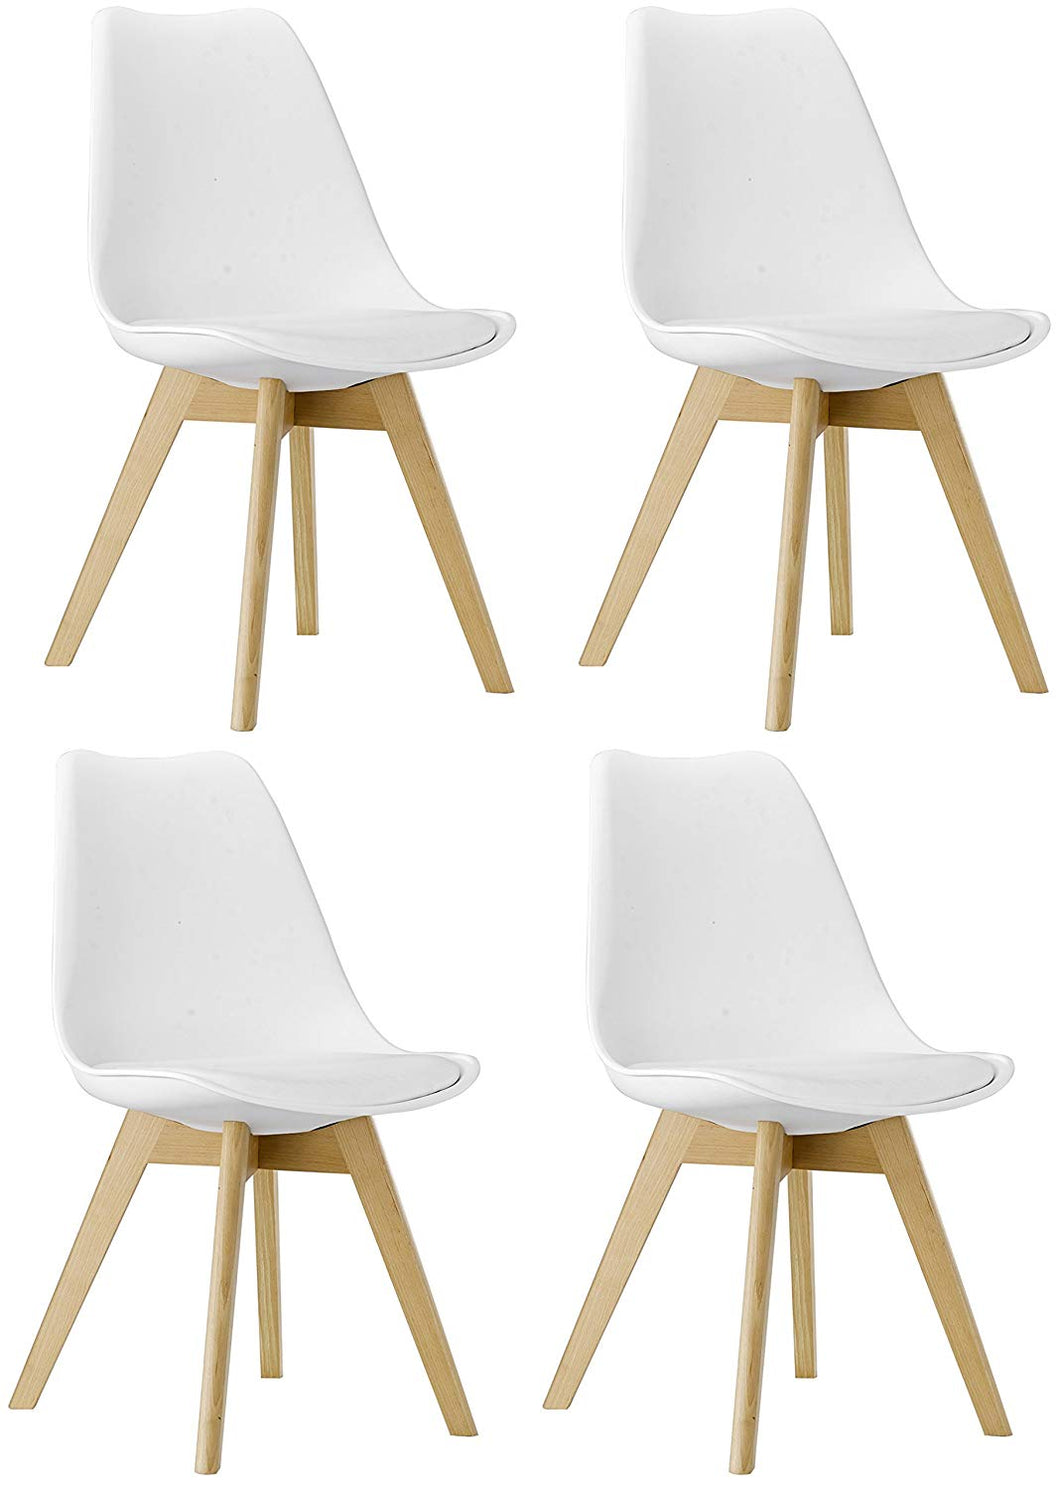 BTEXPERT m5079 Naba Modern Midcentury Wood Leg Soft Padded Upholstery White Dining Chairs Set of 4